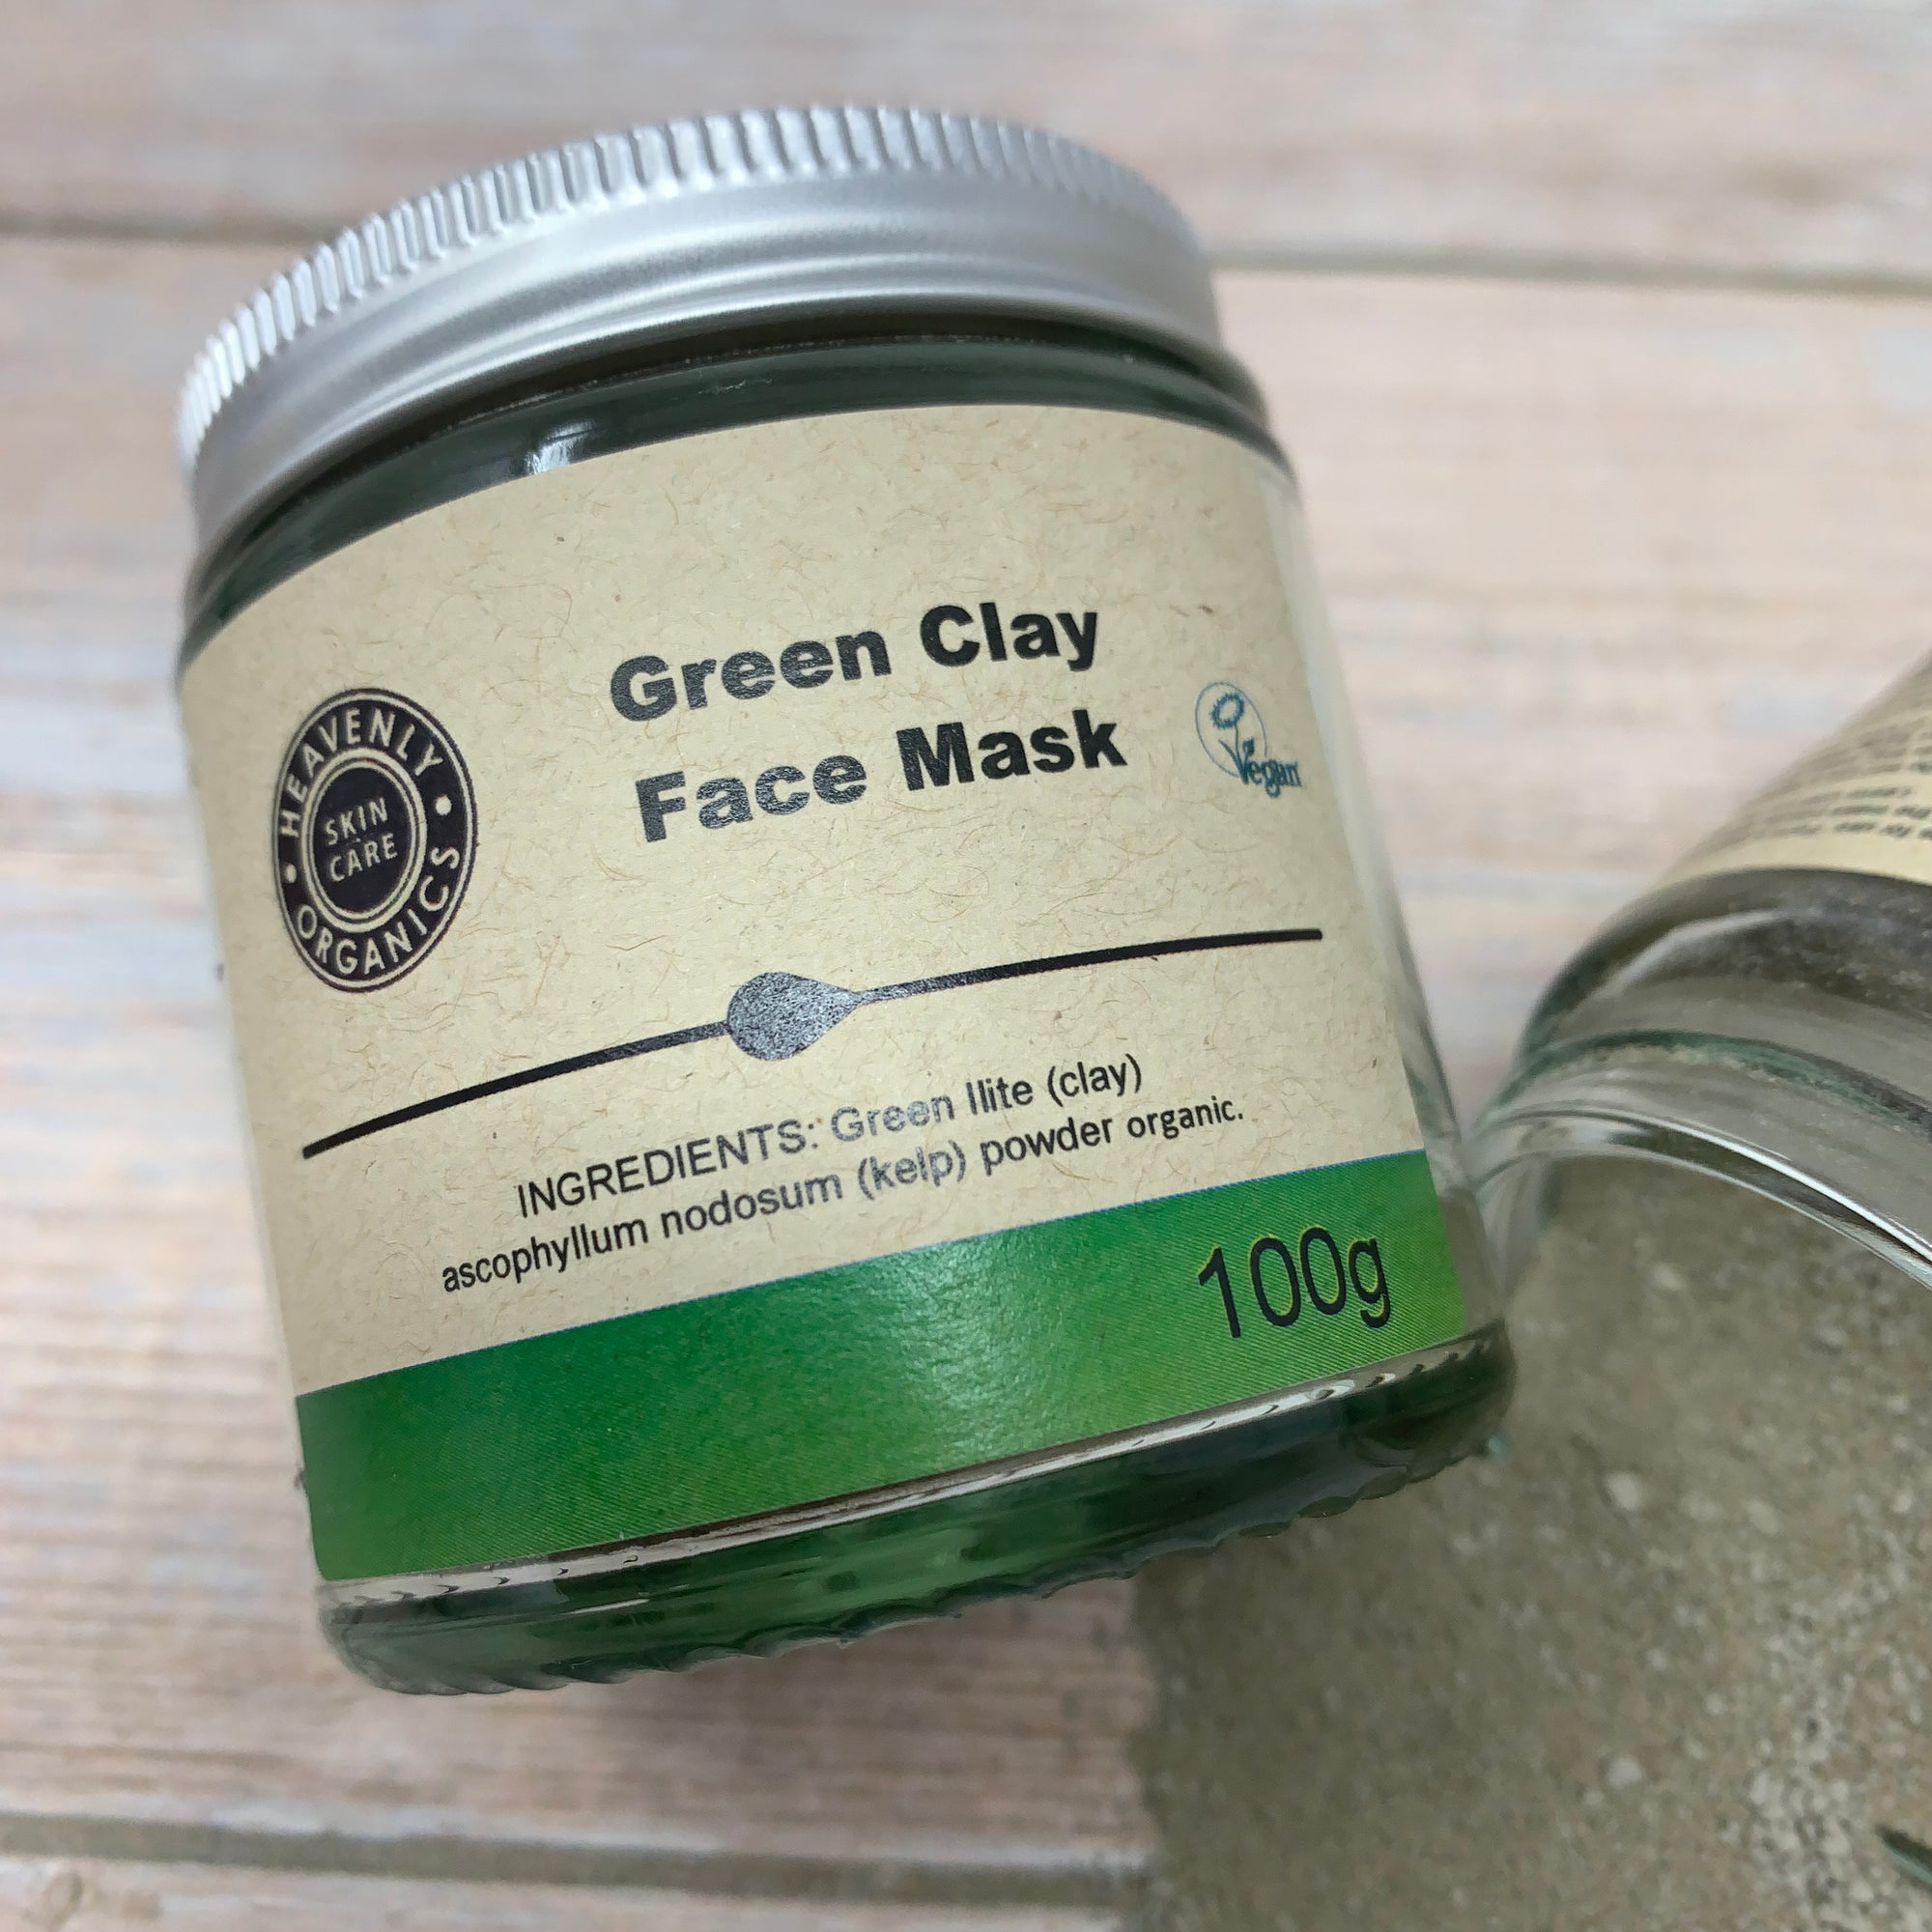 green clay face mask in a glass jar and metal cap with green and cream coloured label by heavenly organics